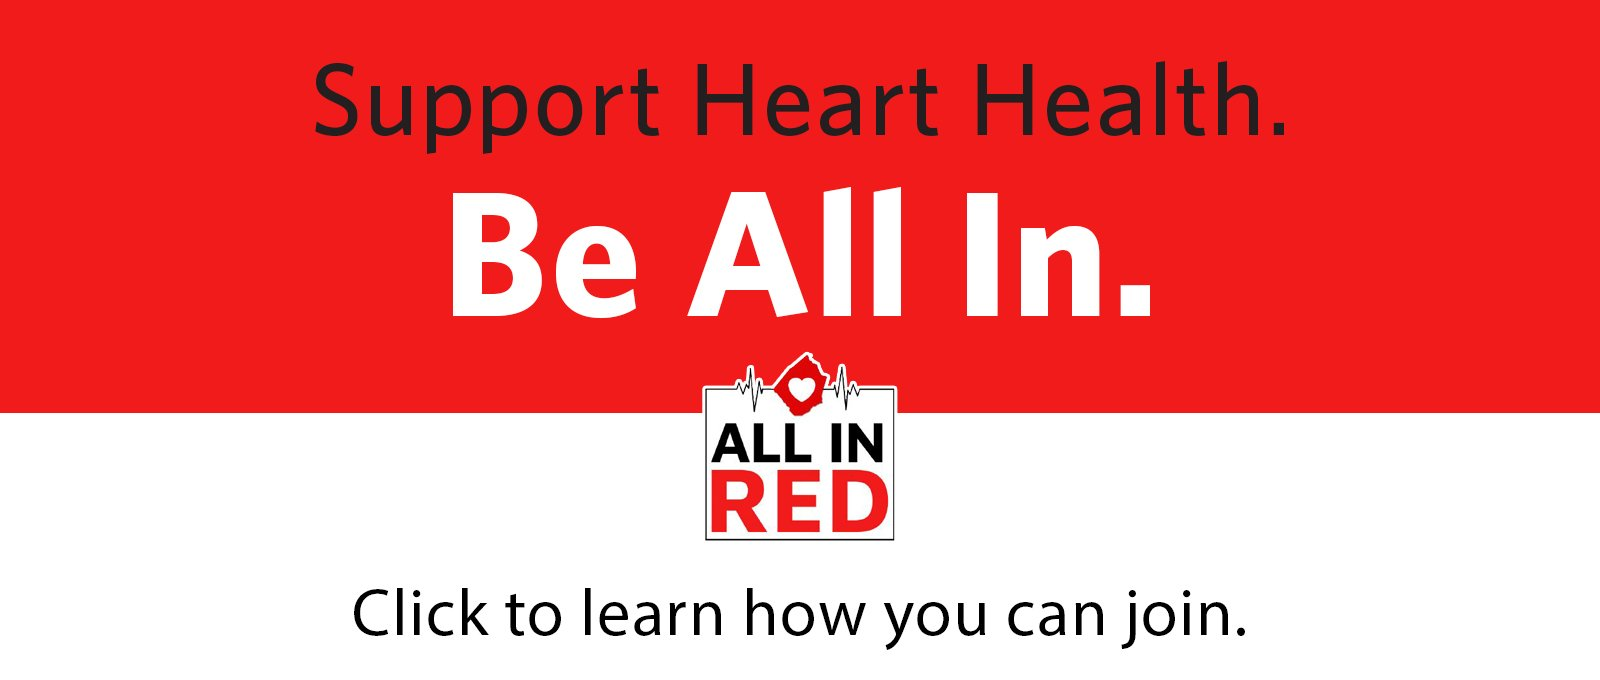 Johnston Health Foundation's All in Red Campaign